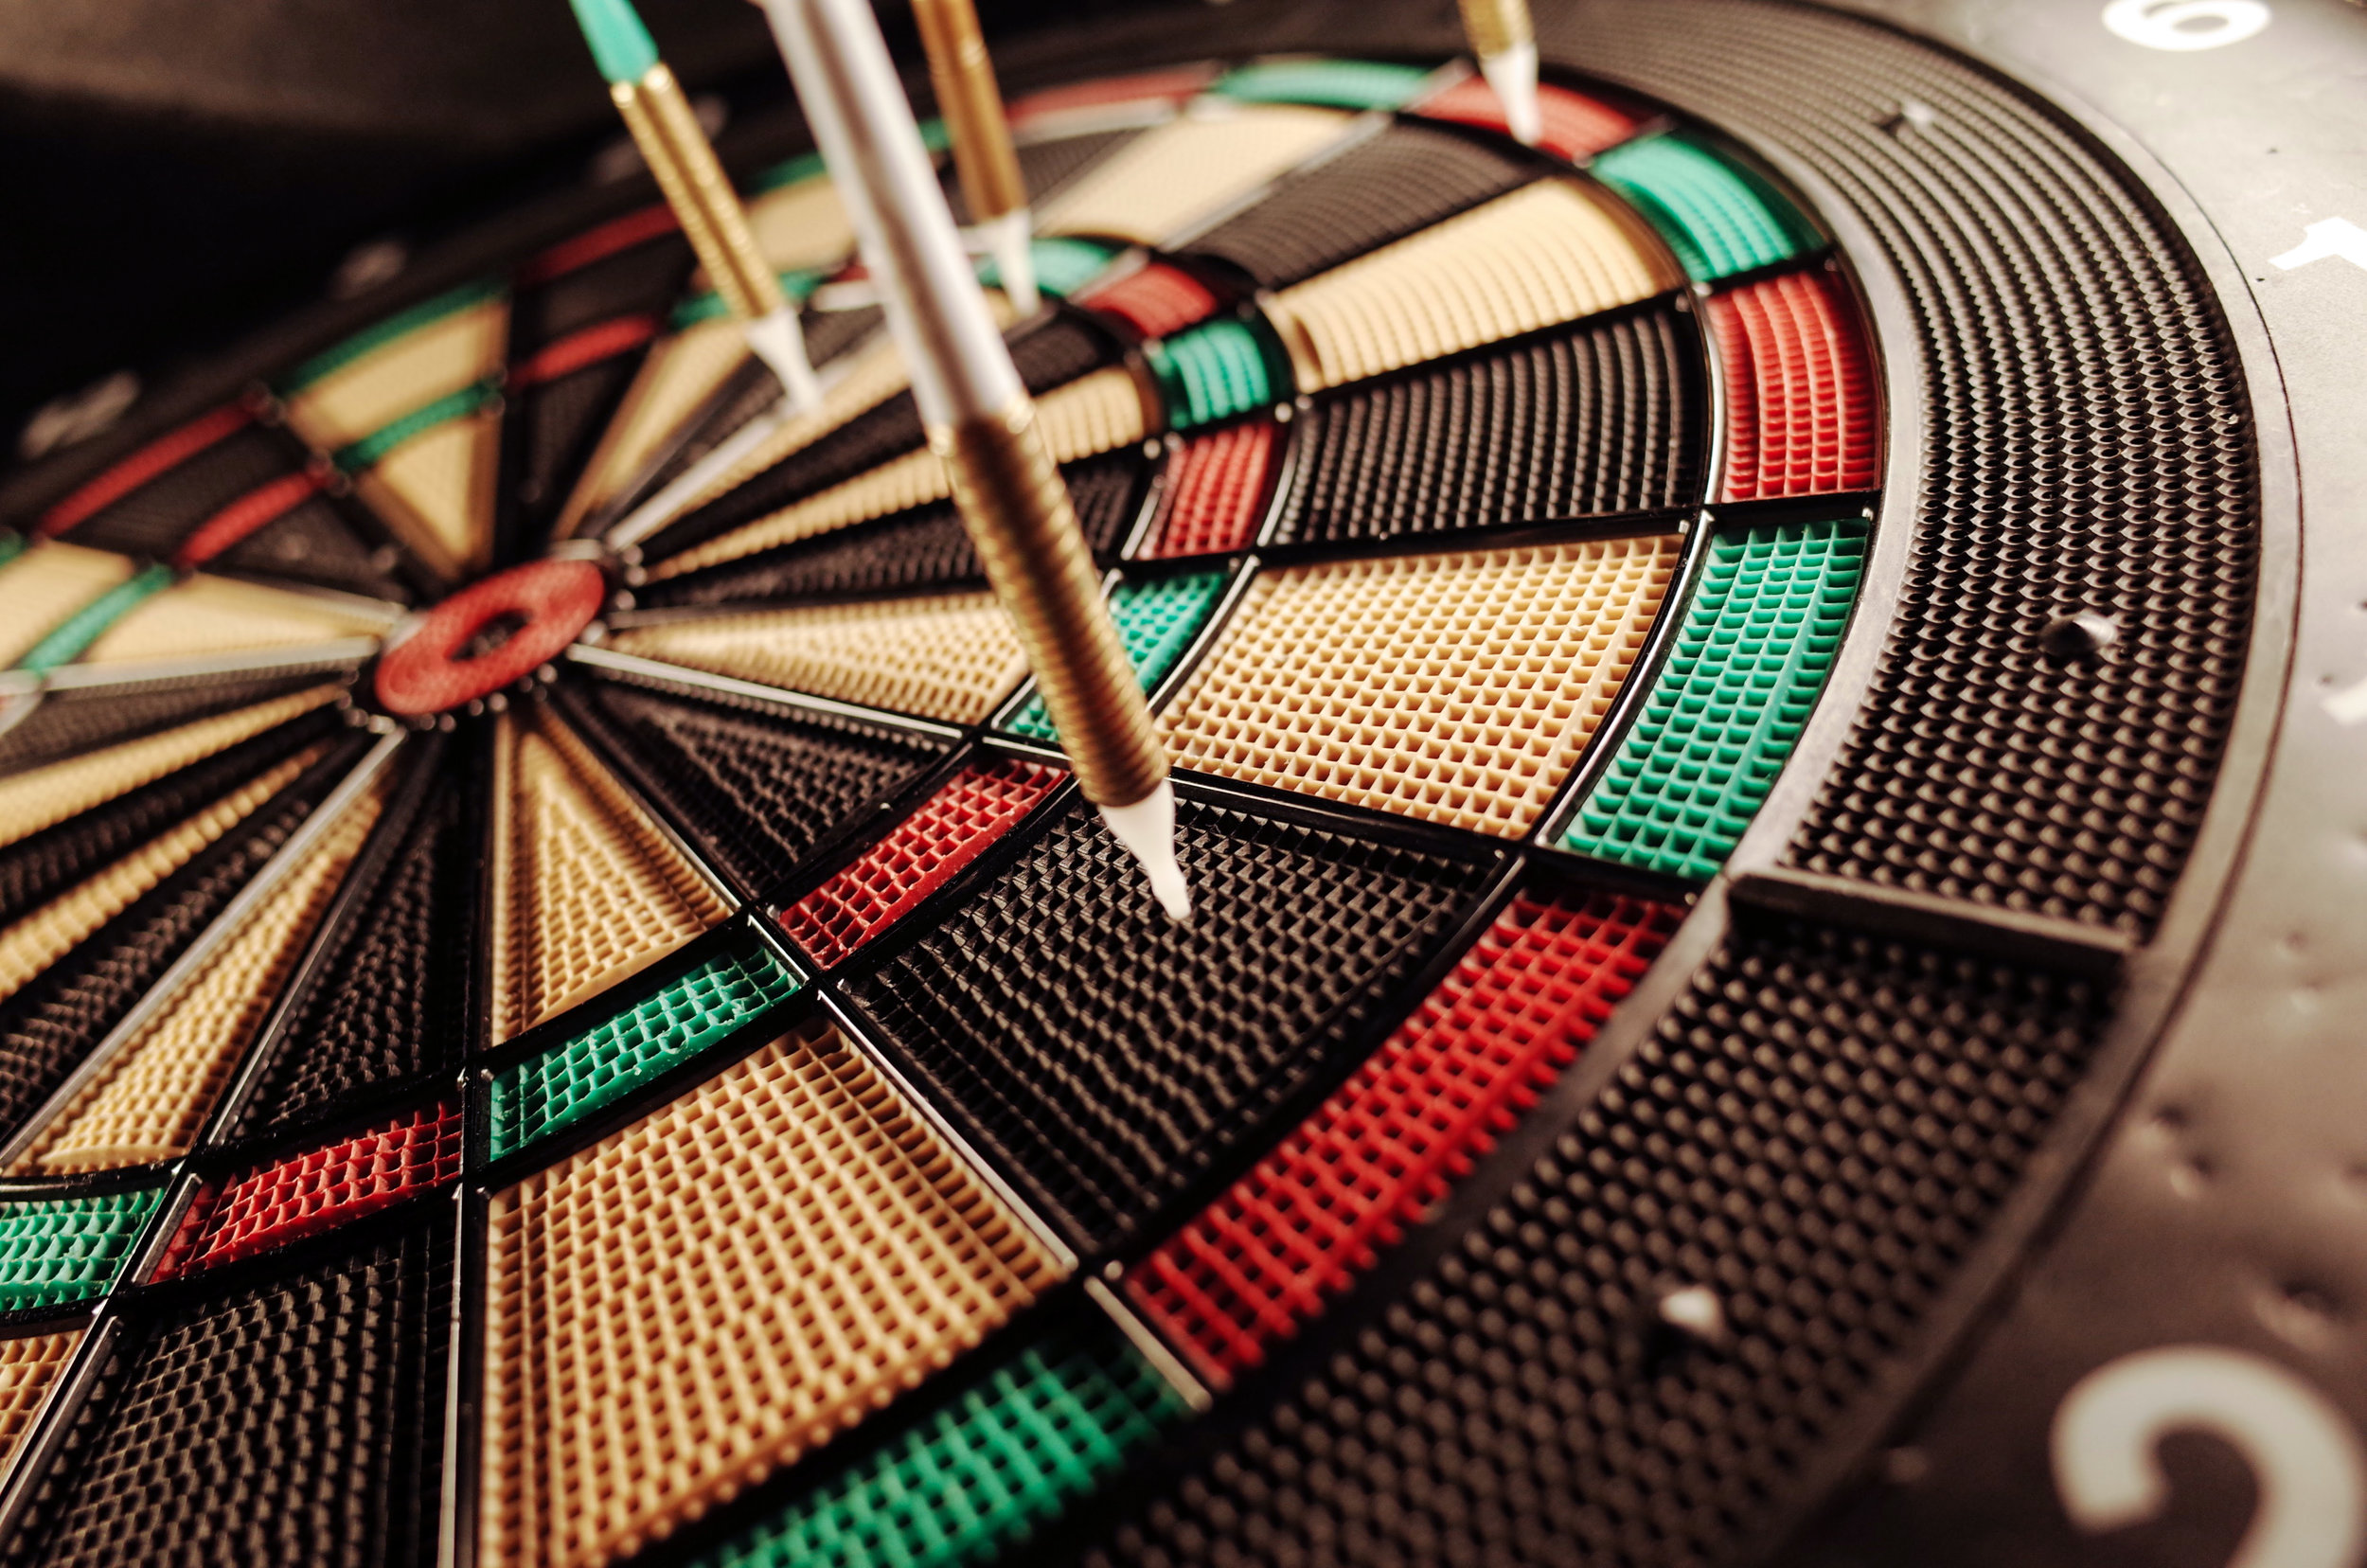 Ideal customer profiles - the opposite of throwing darts and seeing what sticks